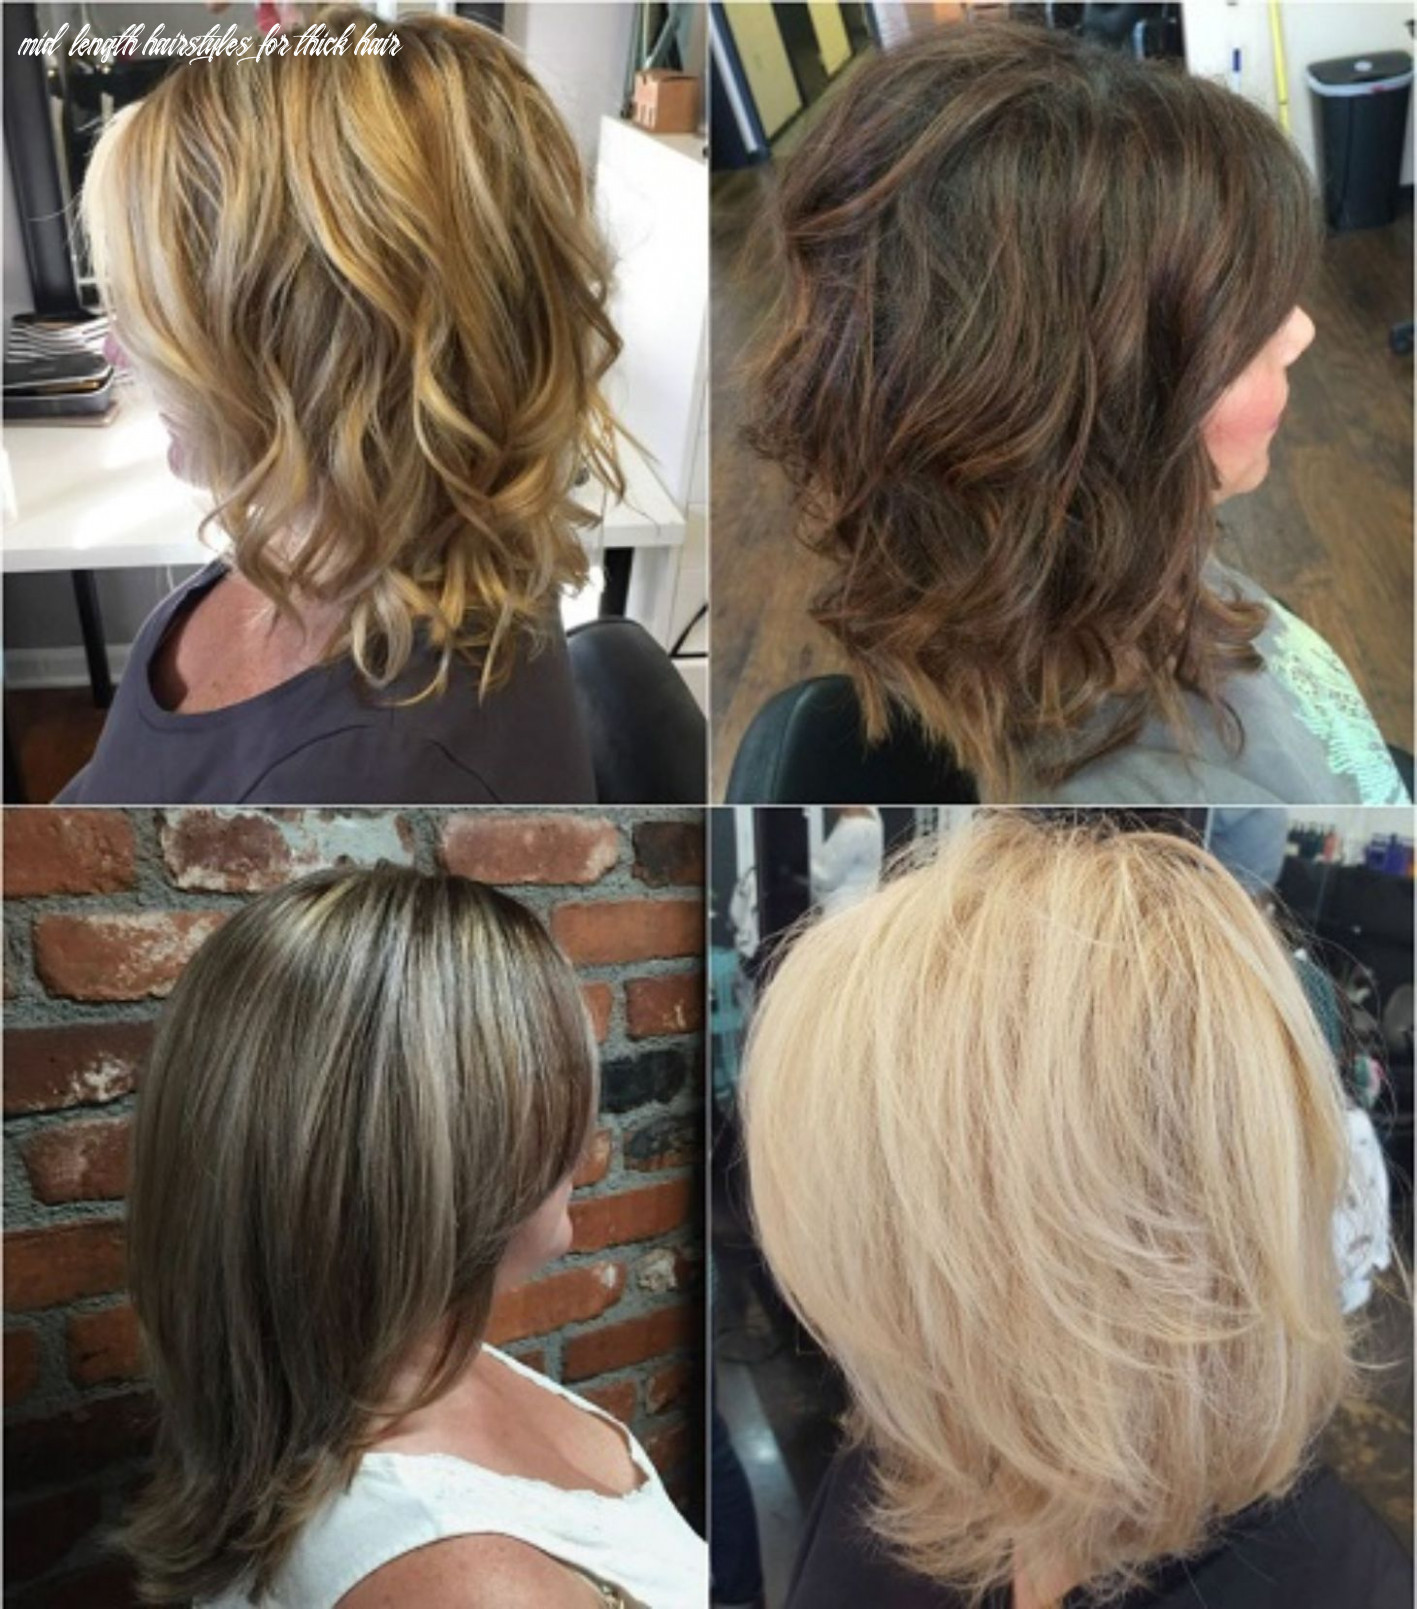 Pin on hairrcuts mid length hairstyles for thick hair